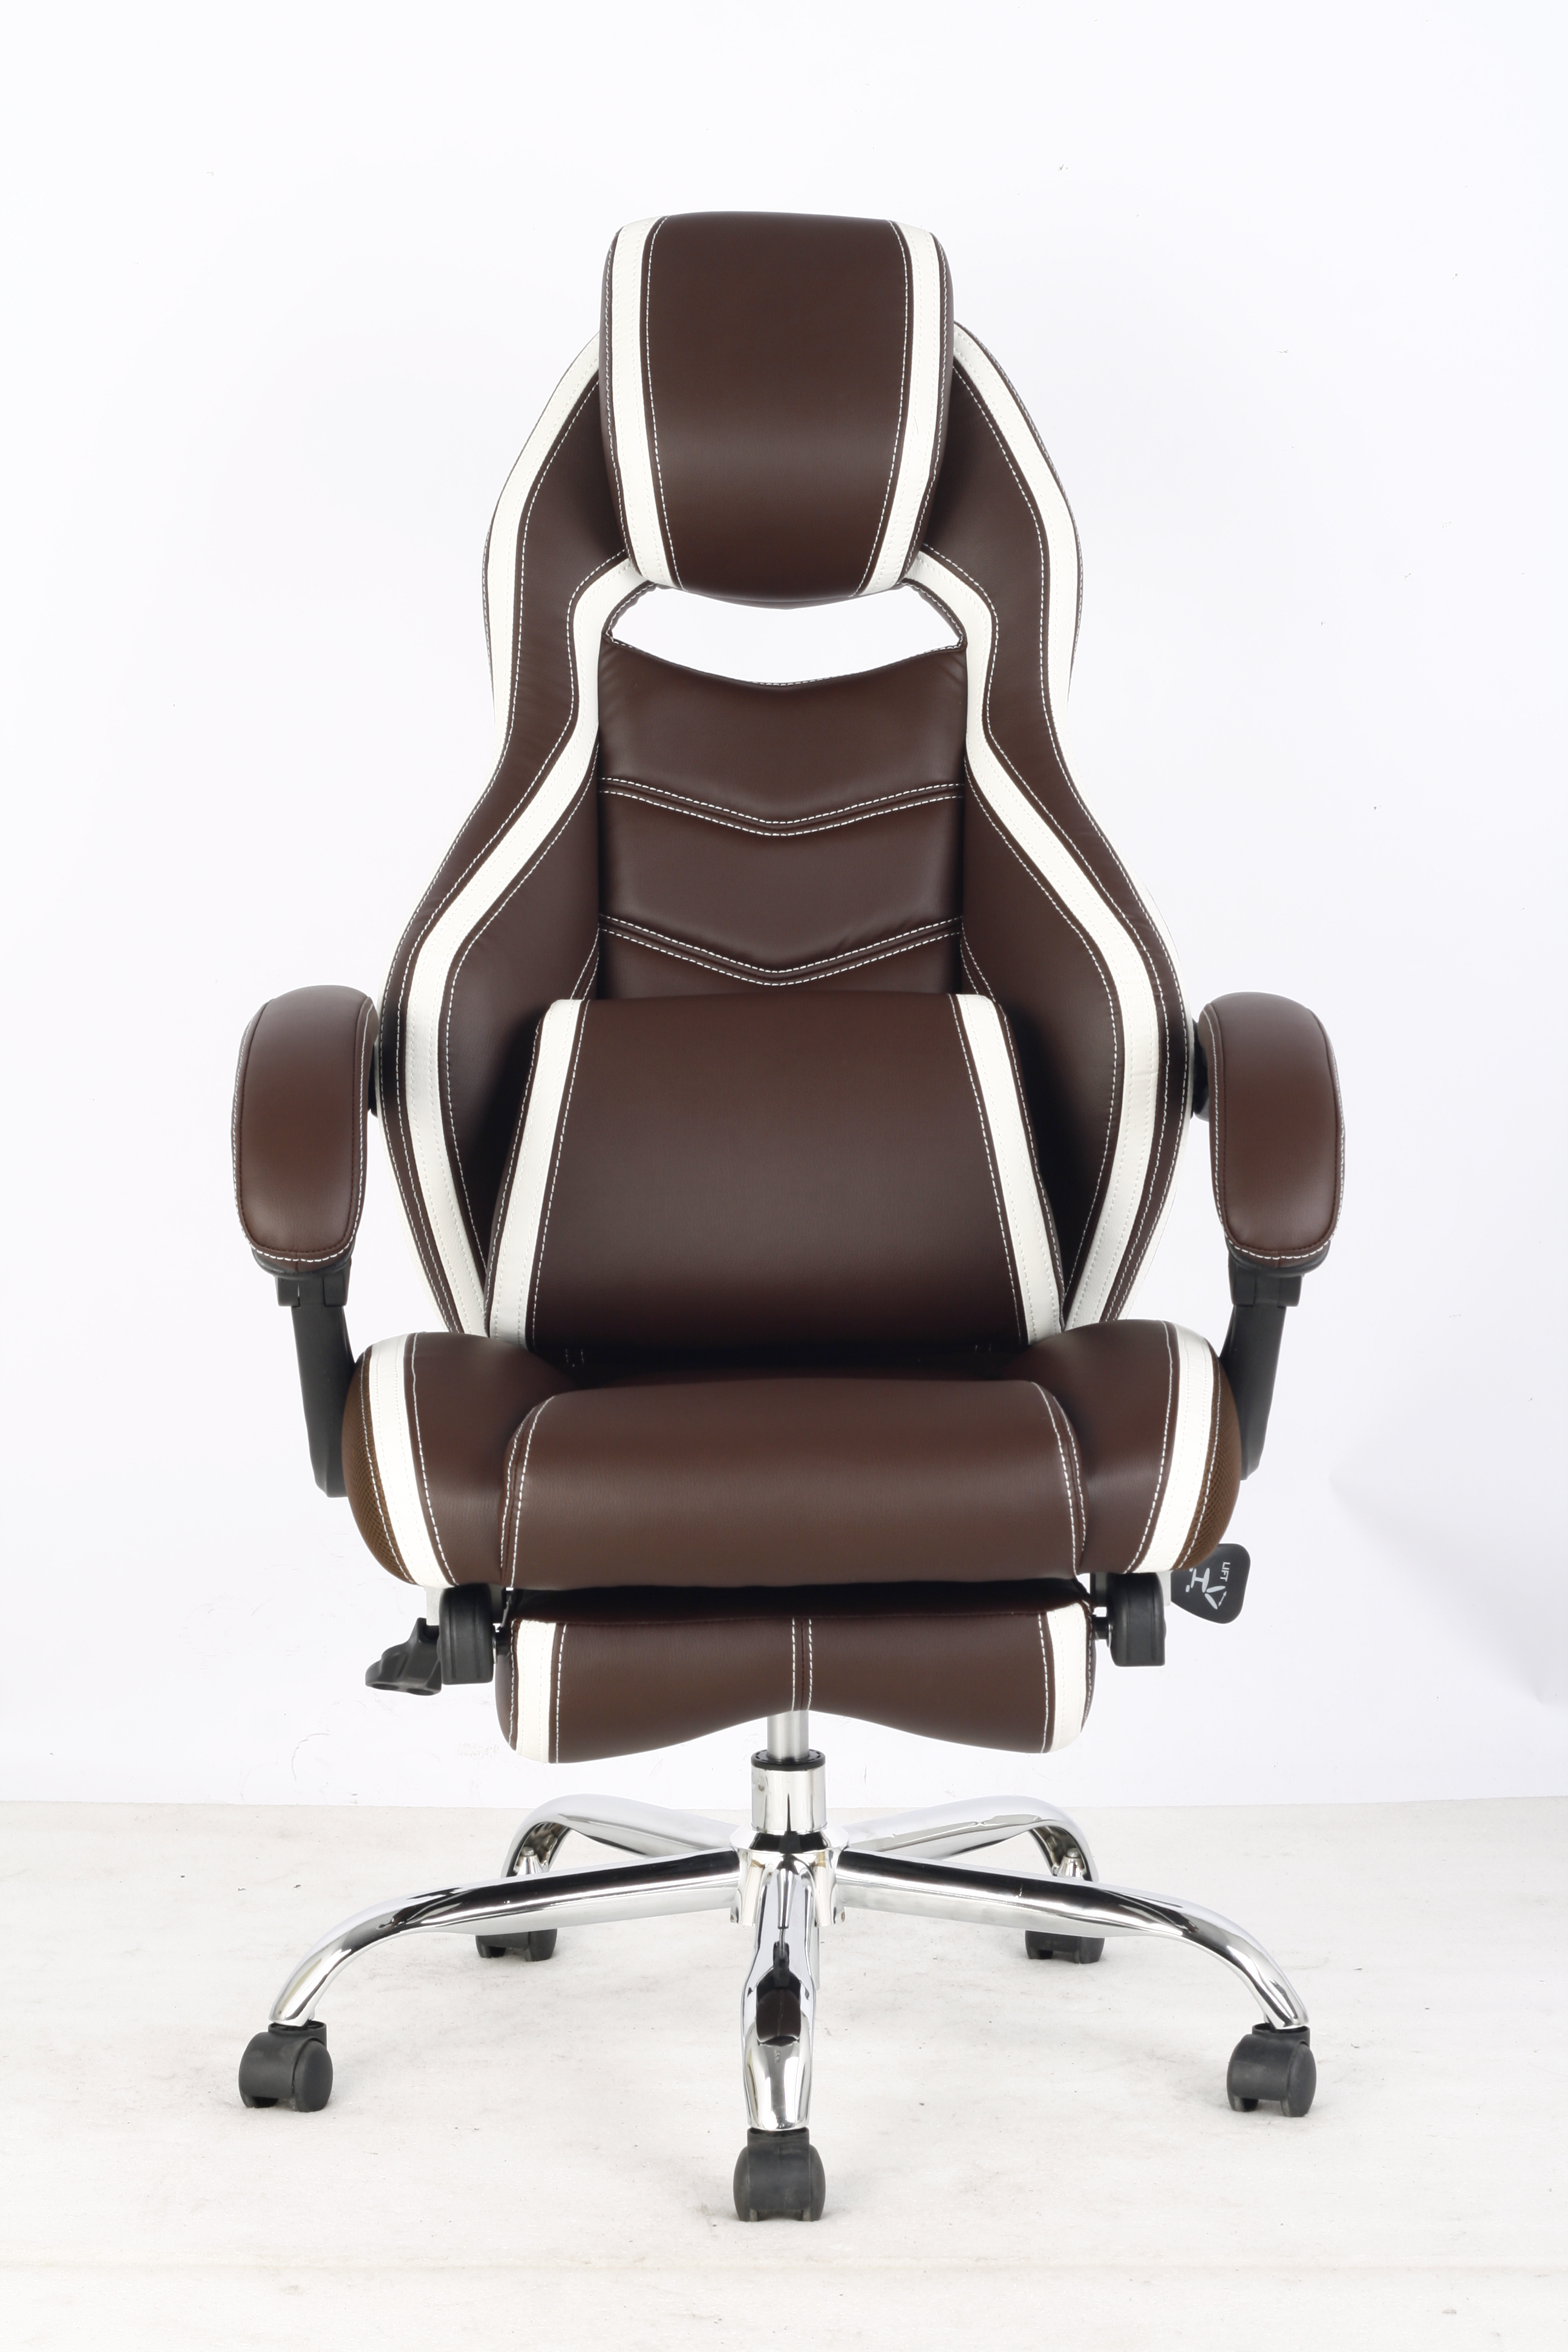 GM Seating Racer Reclining Chair Brown and White PU Chrome Base